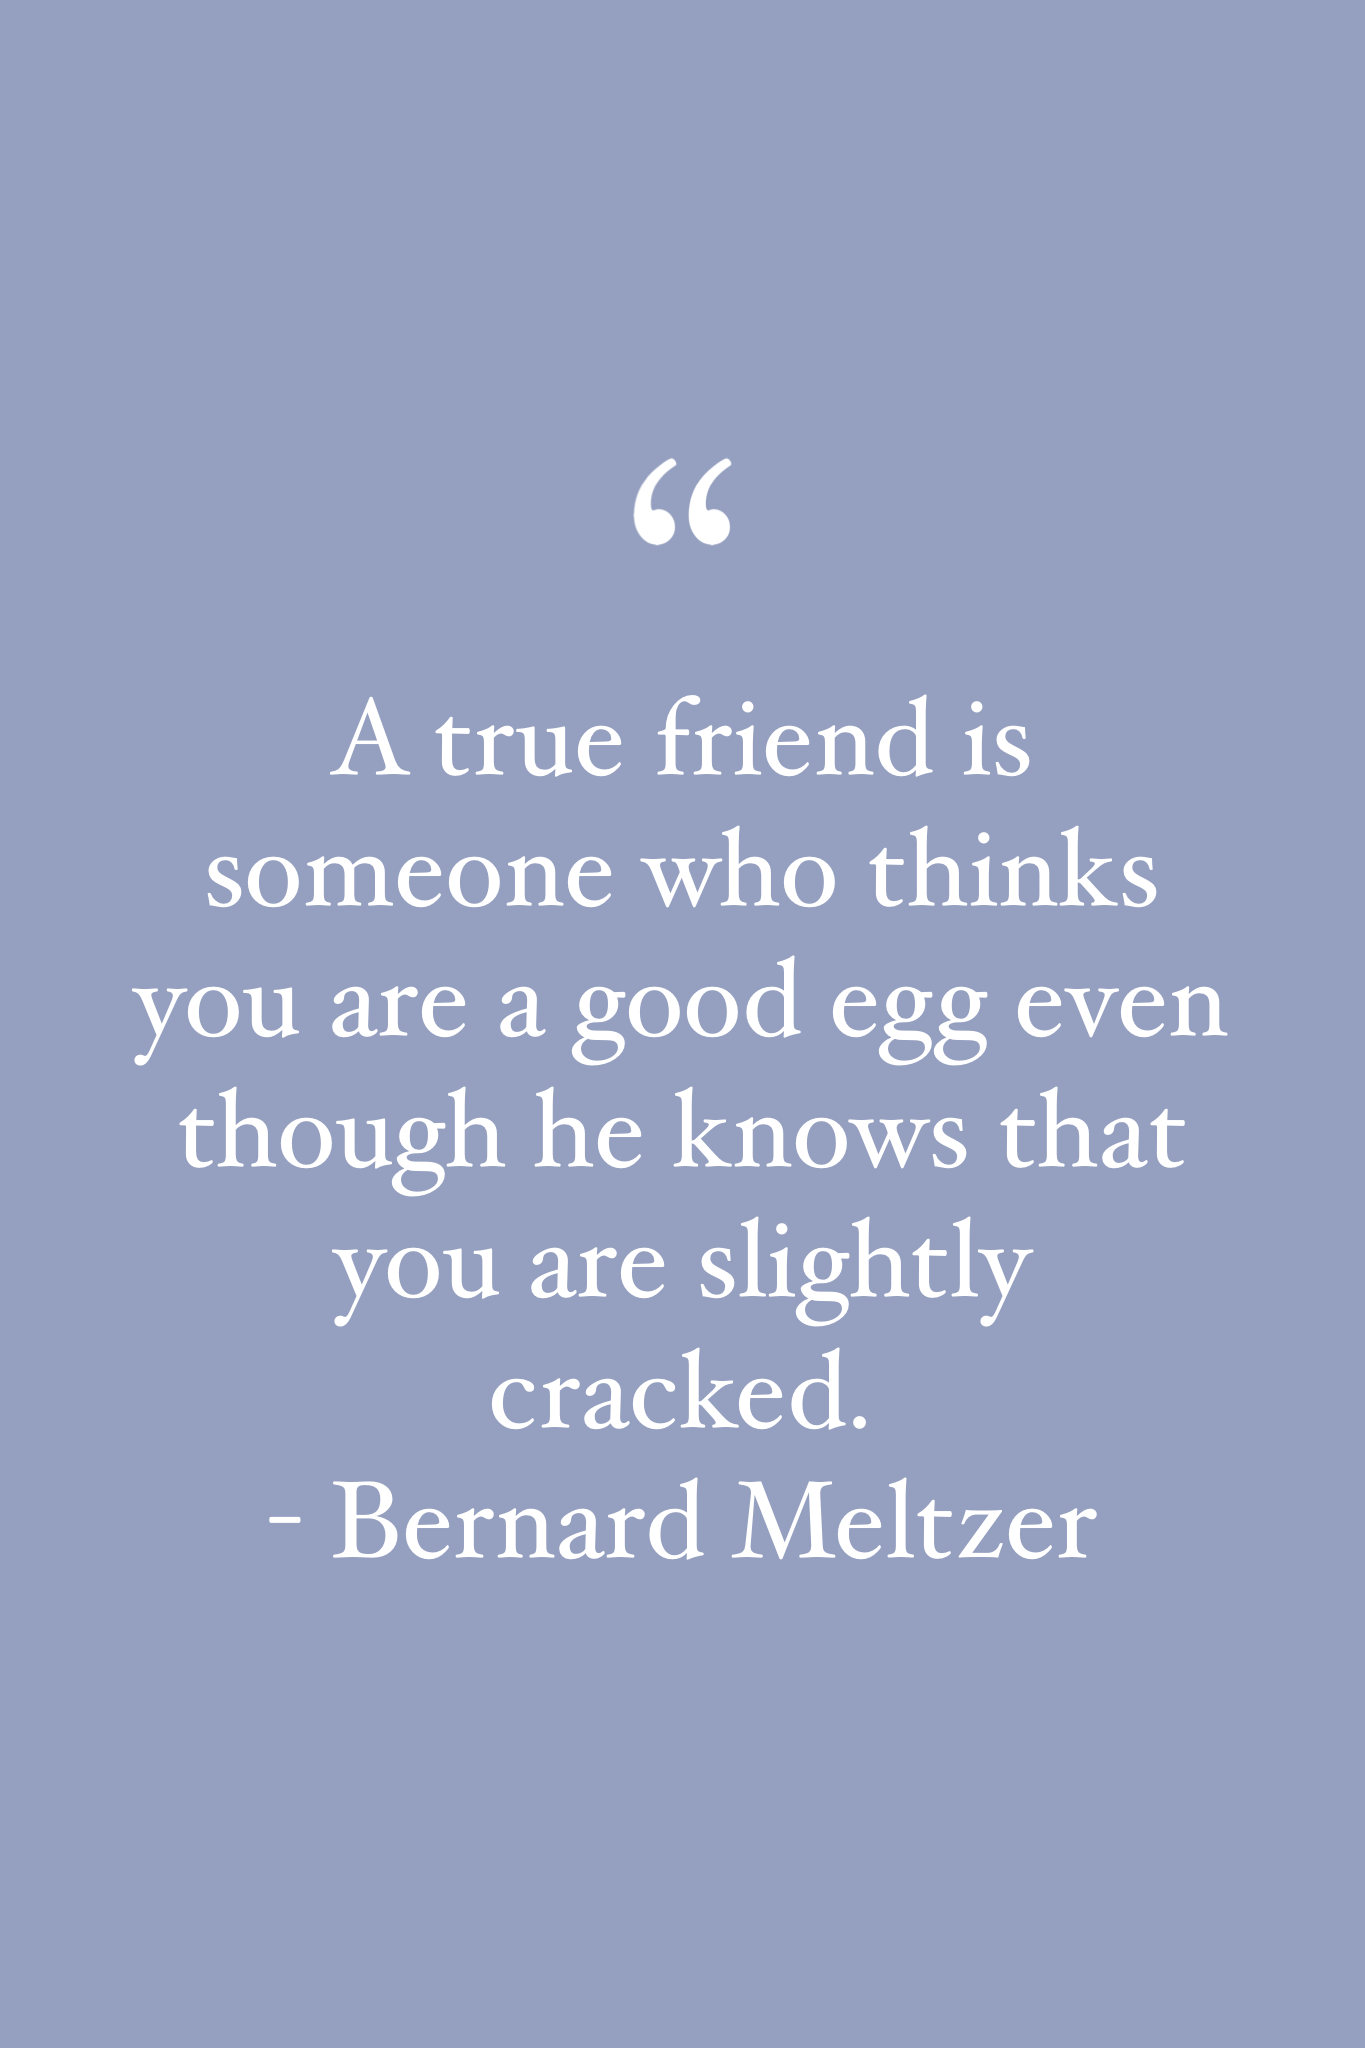 35 Beautiful Quotes About the Meaning of Friendship